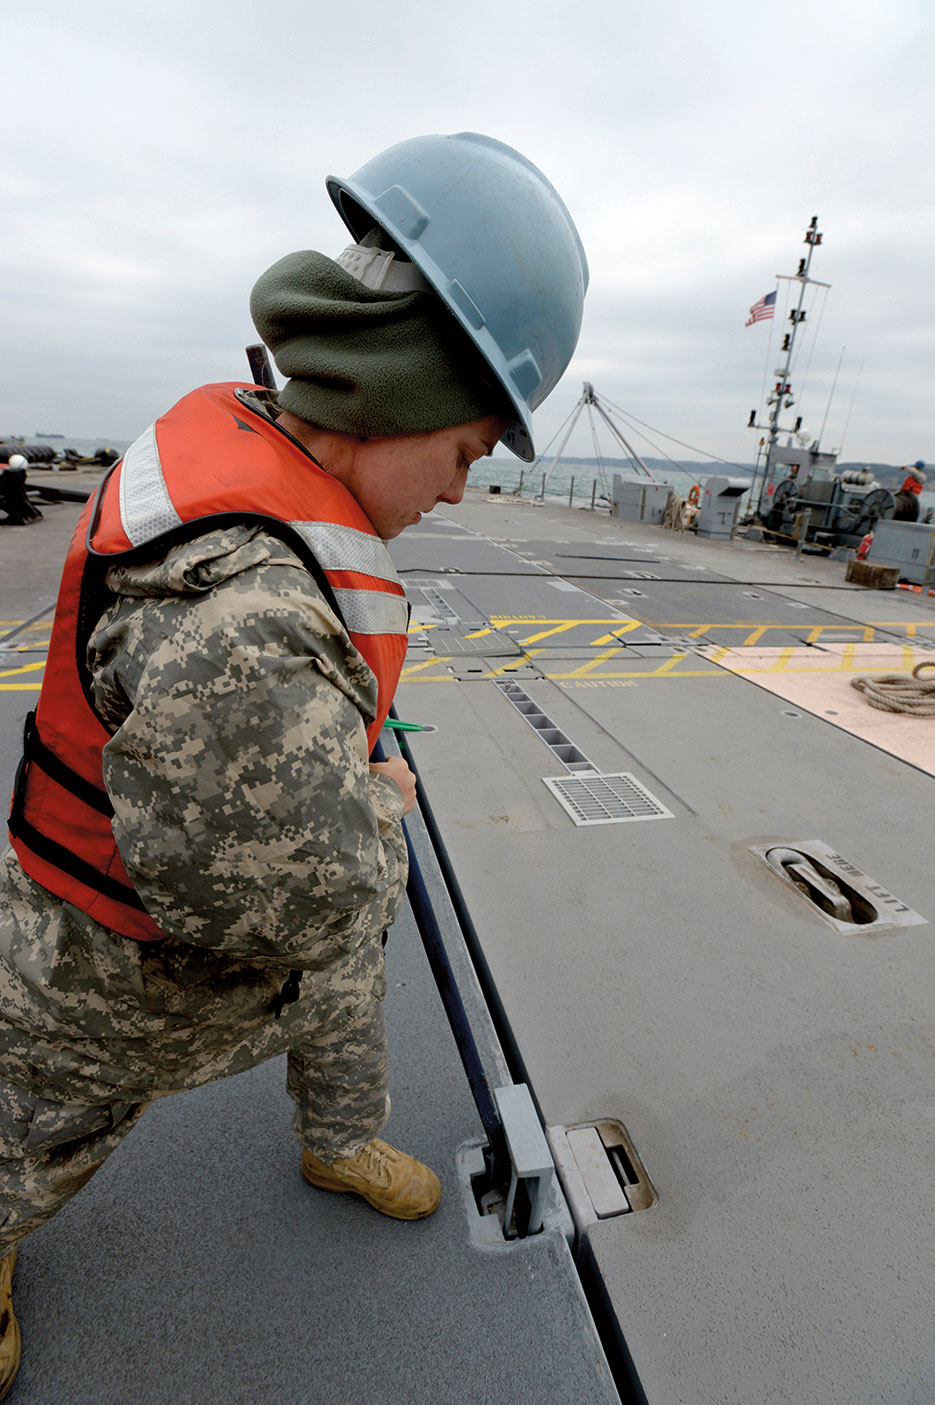 Soldier assigned to 331st Transportation Company locks in portion of Trident pier during Combined/Joint Logistics Over-the-Shore naval exercise on Korean Peninsula, April 15, 2013, intended to improve logistics interoperability, communication, and cooperation between the United States and South Korea (U.S. Navy/Elisandro T. Diaz)